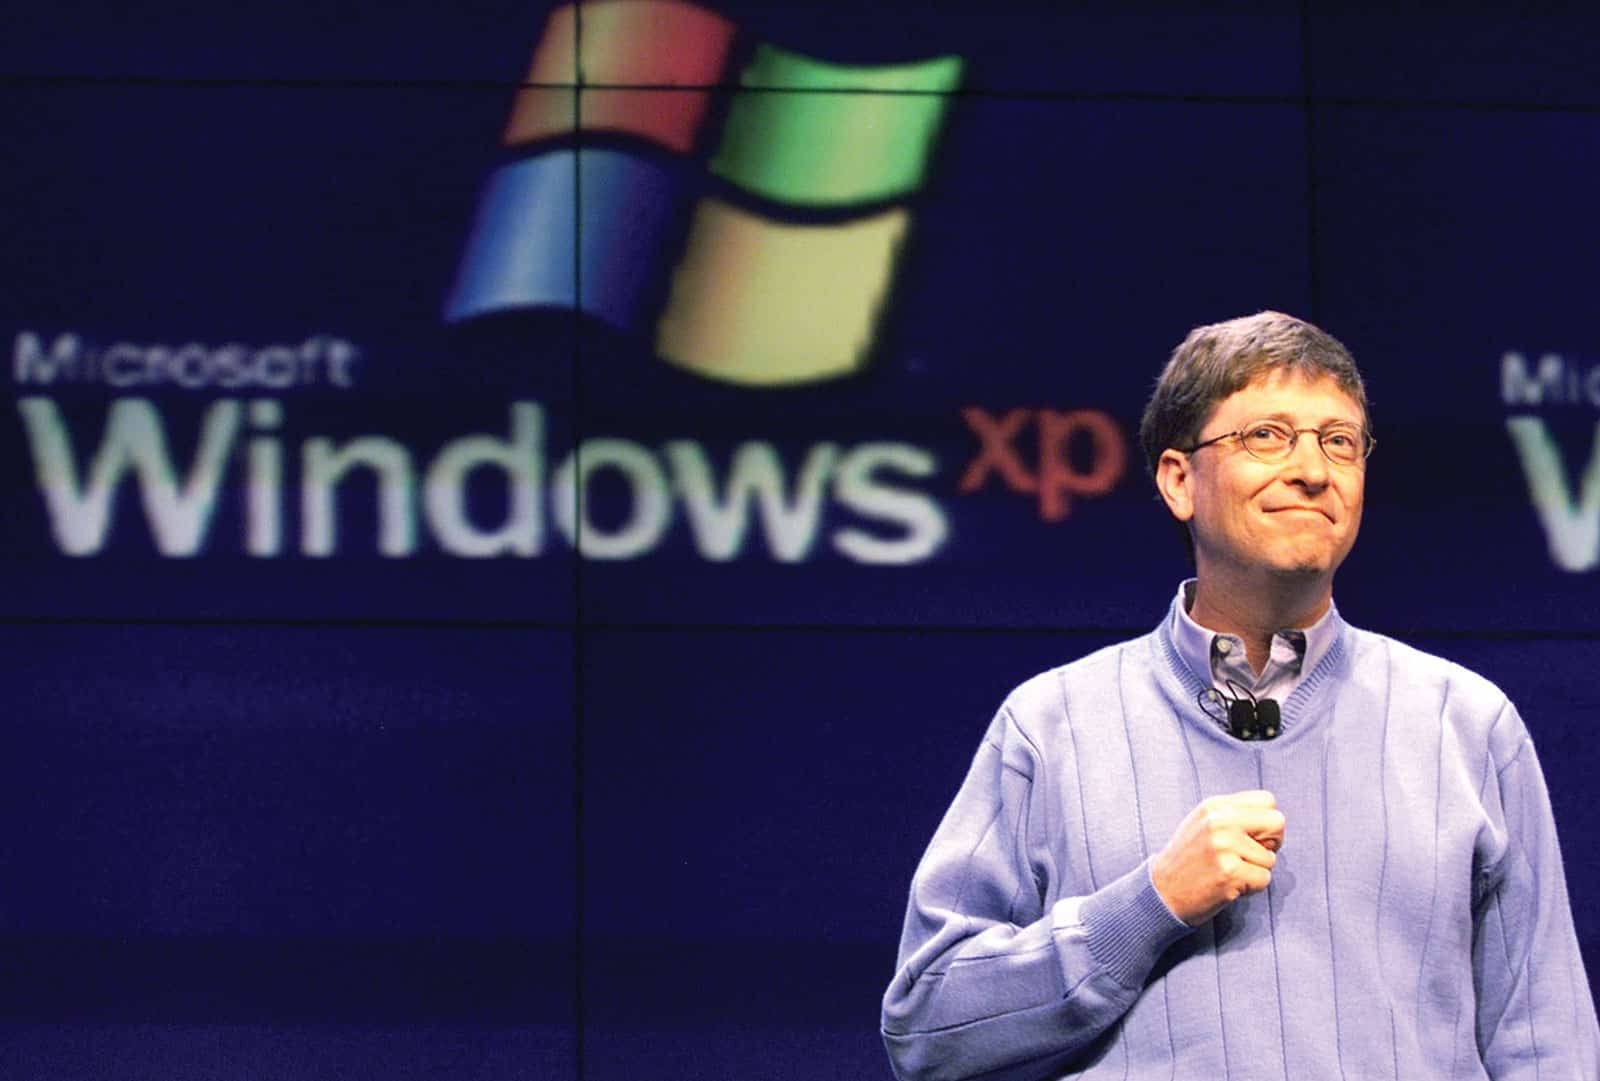 Bill Gates Early Business Success